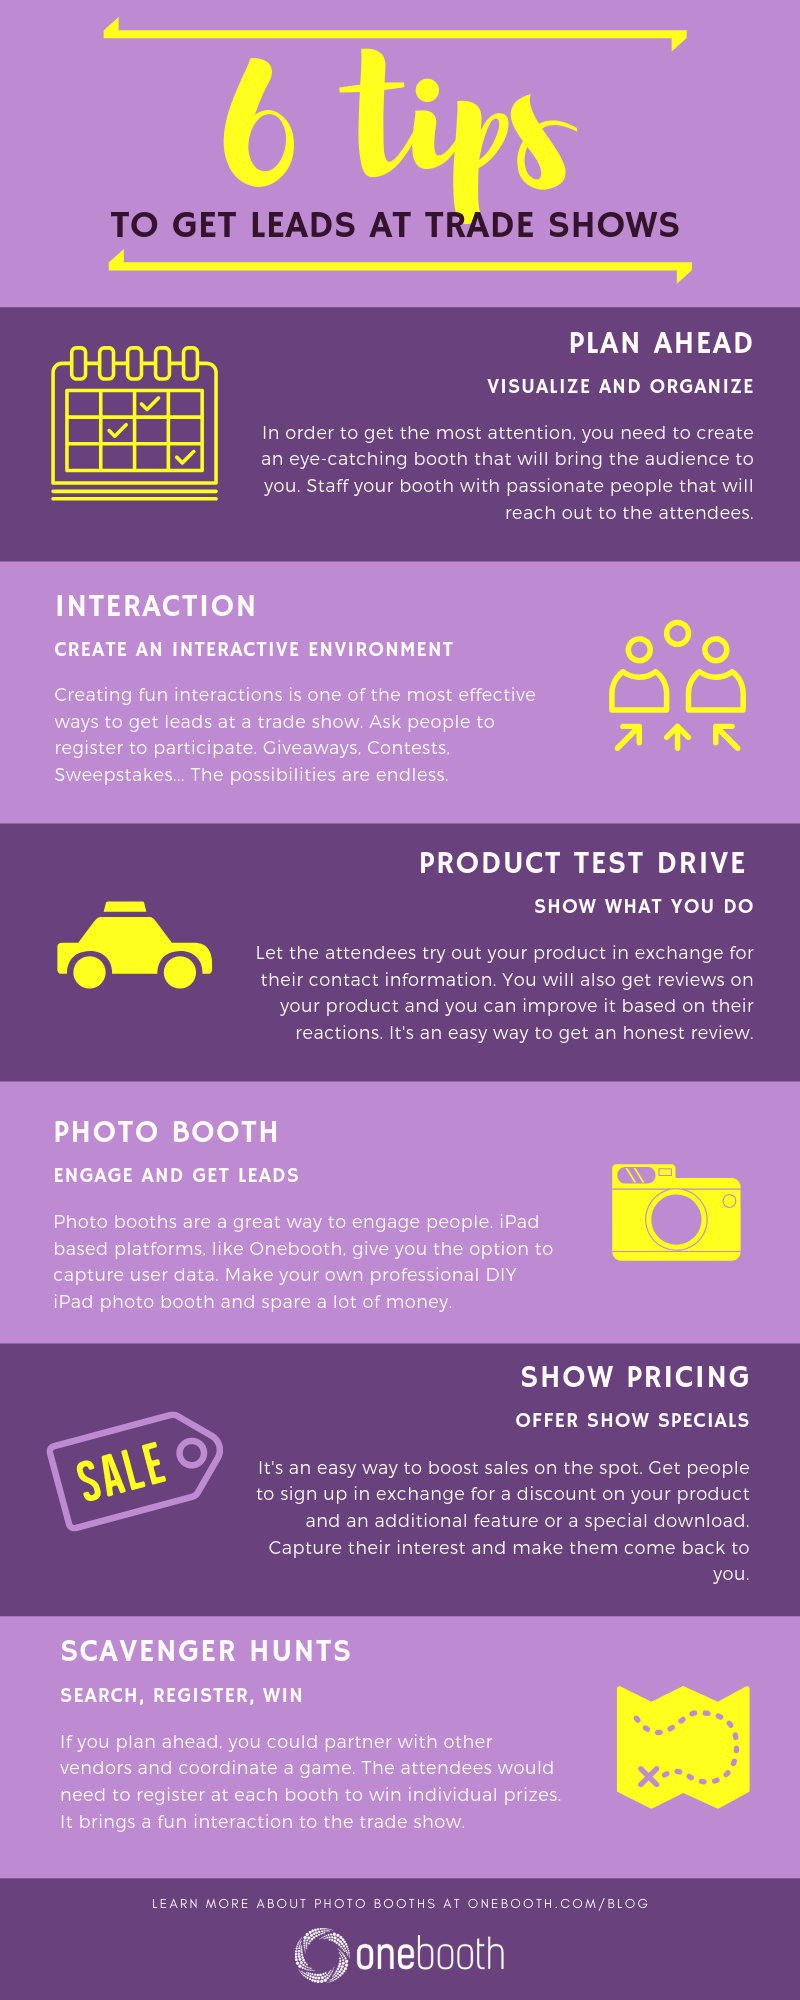 Infographic: 6 Tips to get leads at Trade Shows by Onebooth